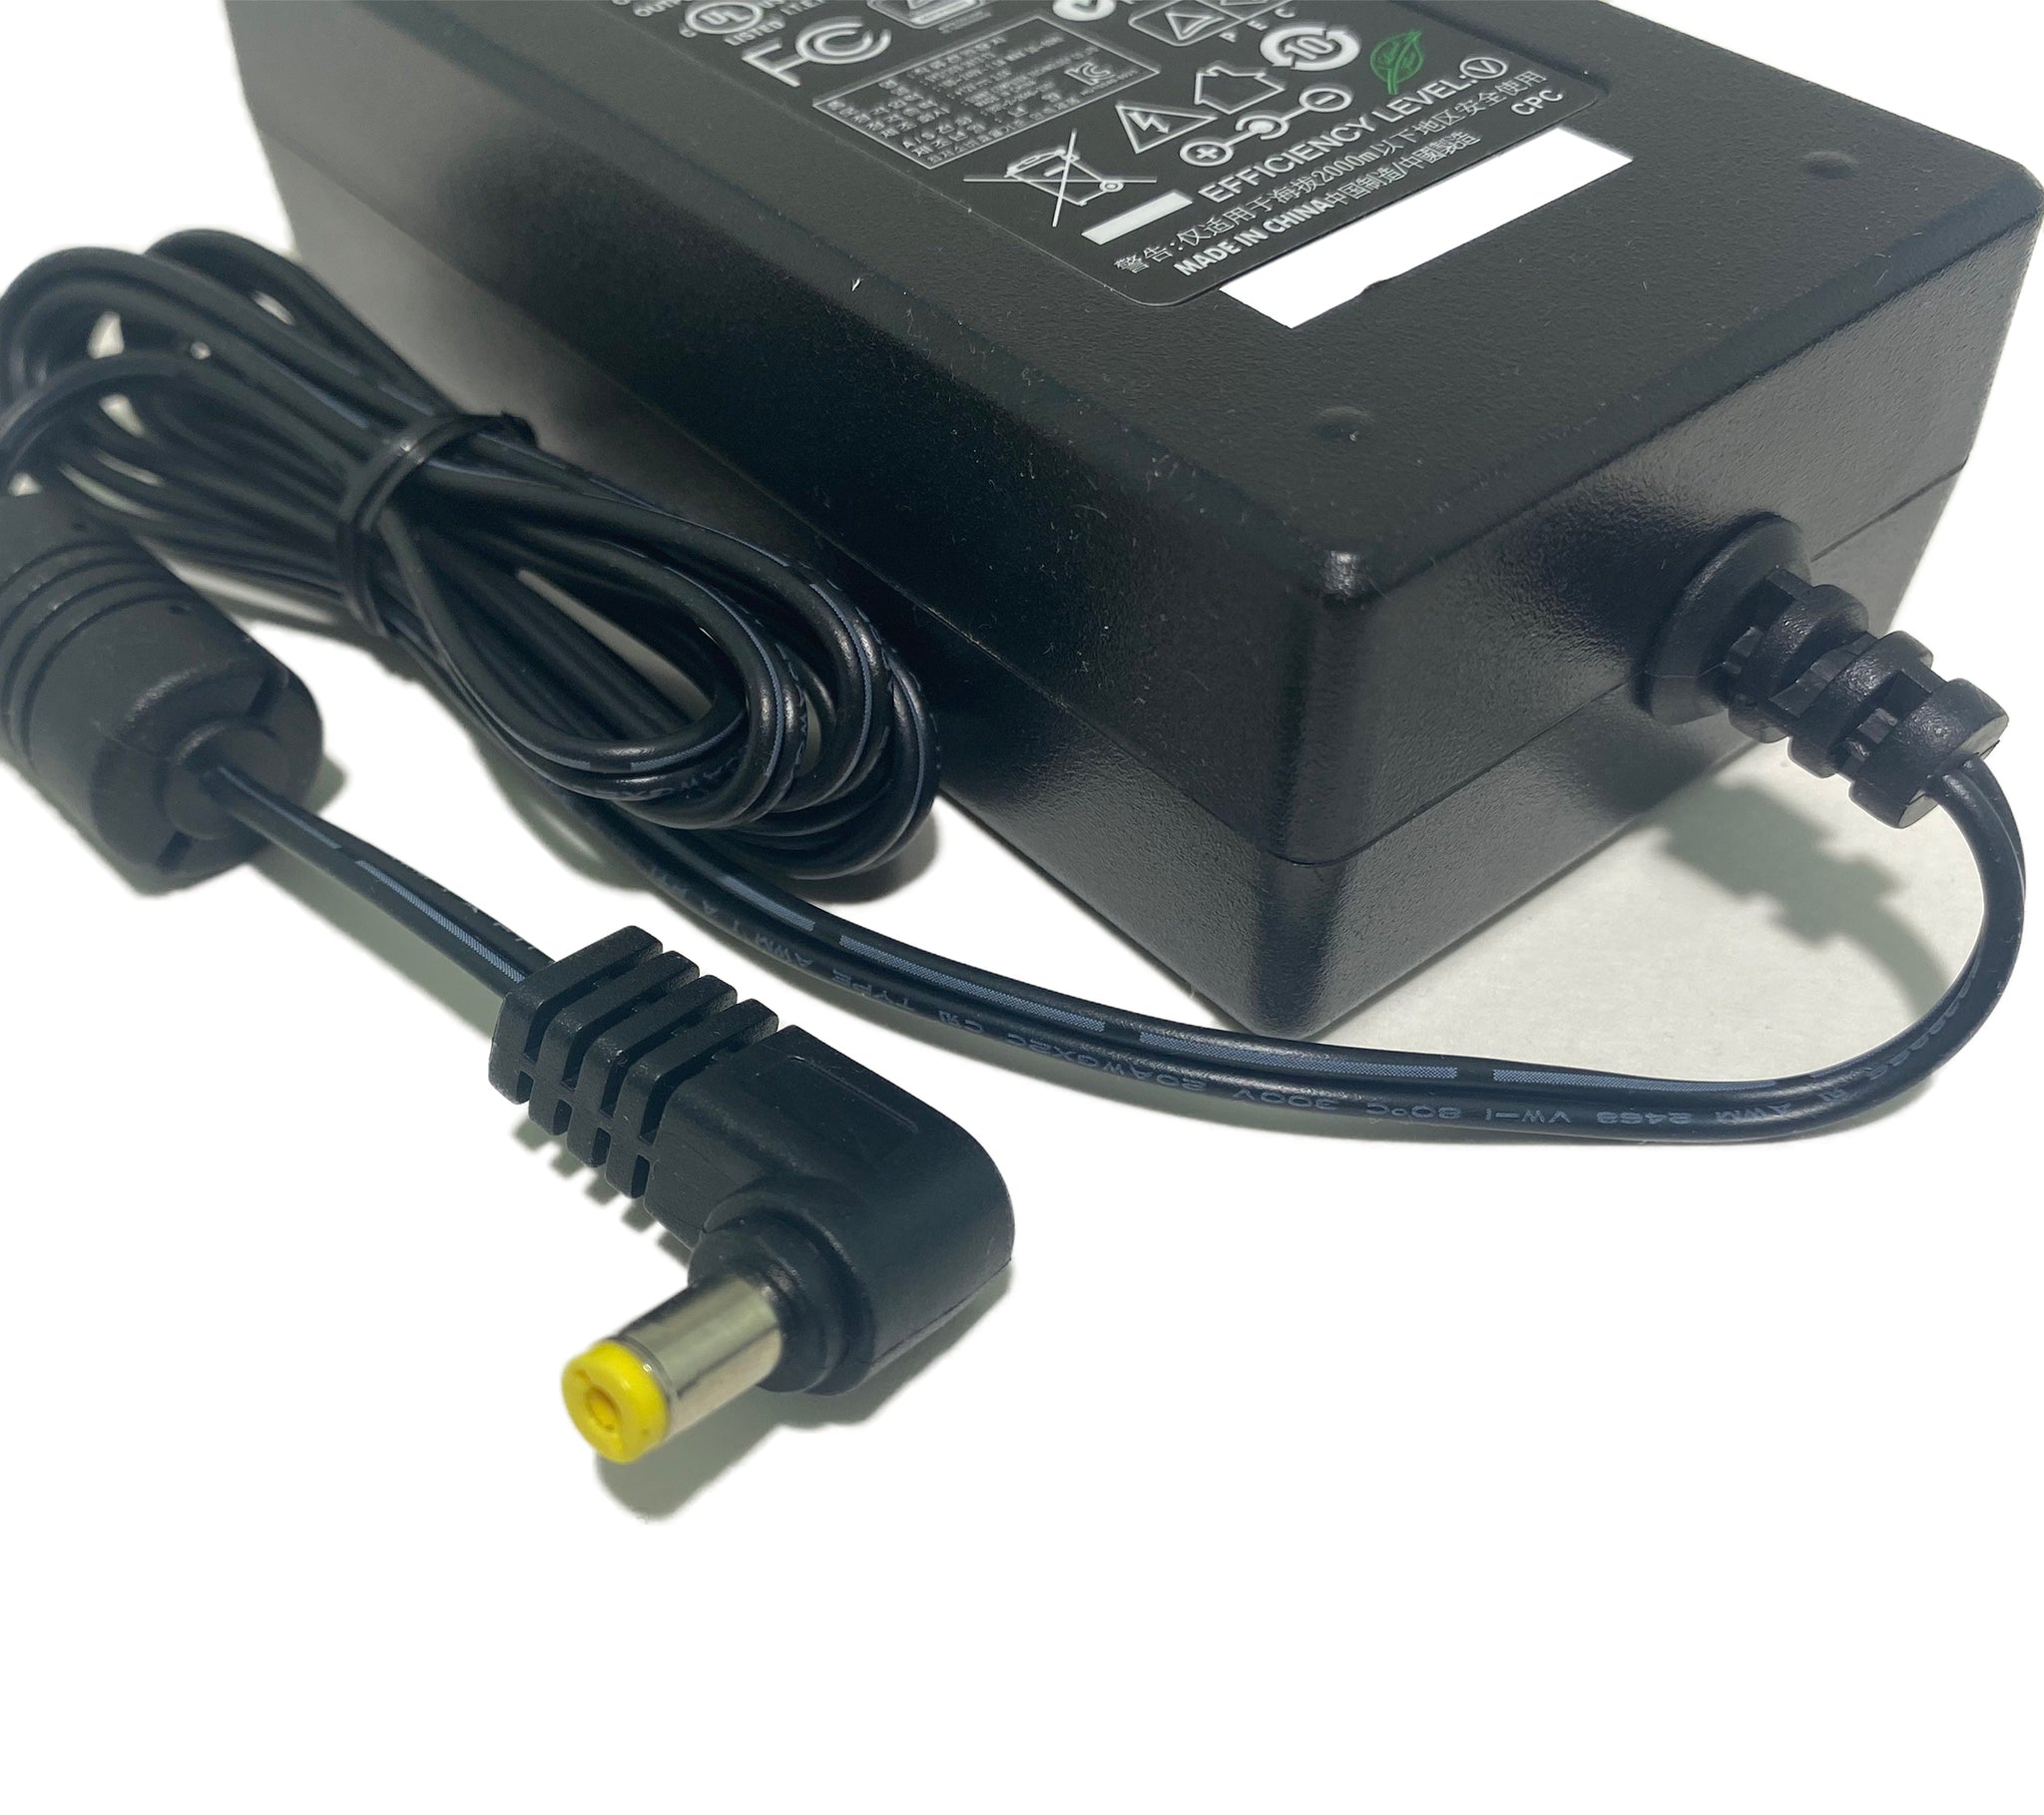 Sunny Power Supply SYS1359-3612-T3 Adapter 12V 3A 36W AC/DC